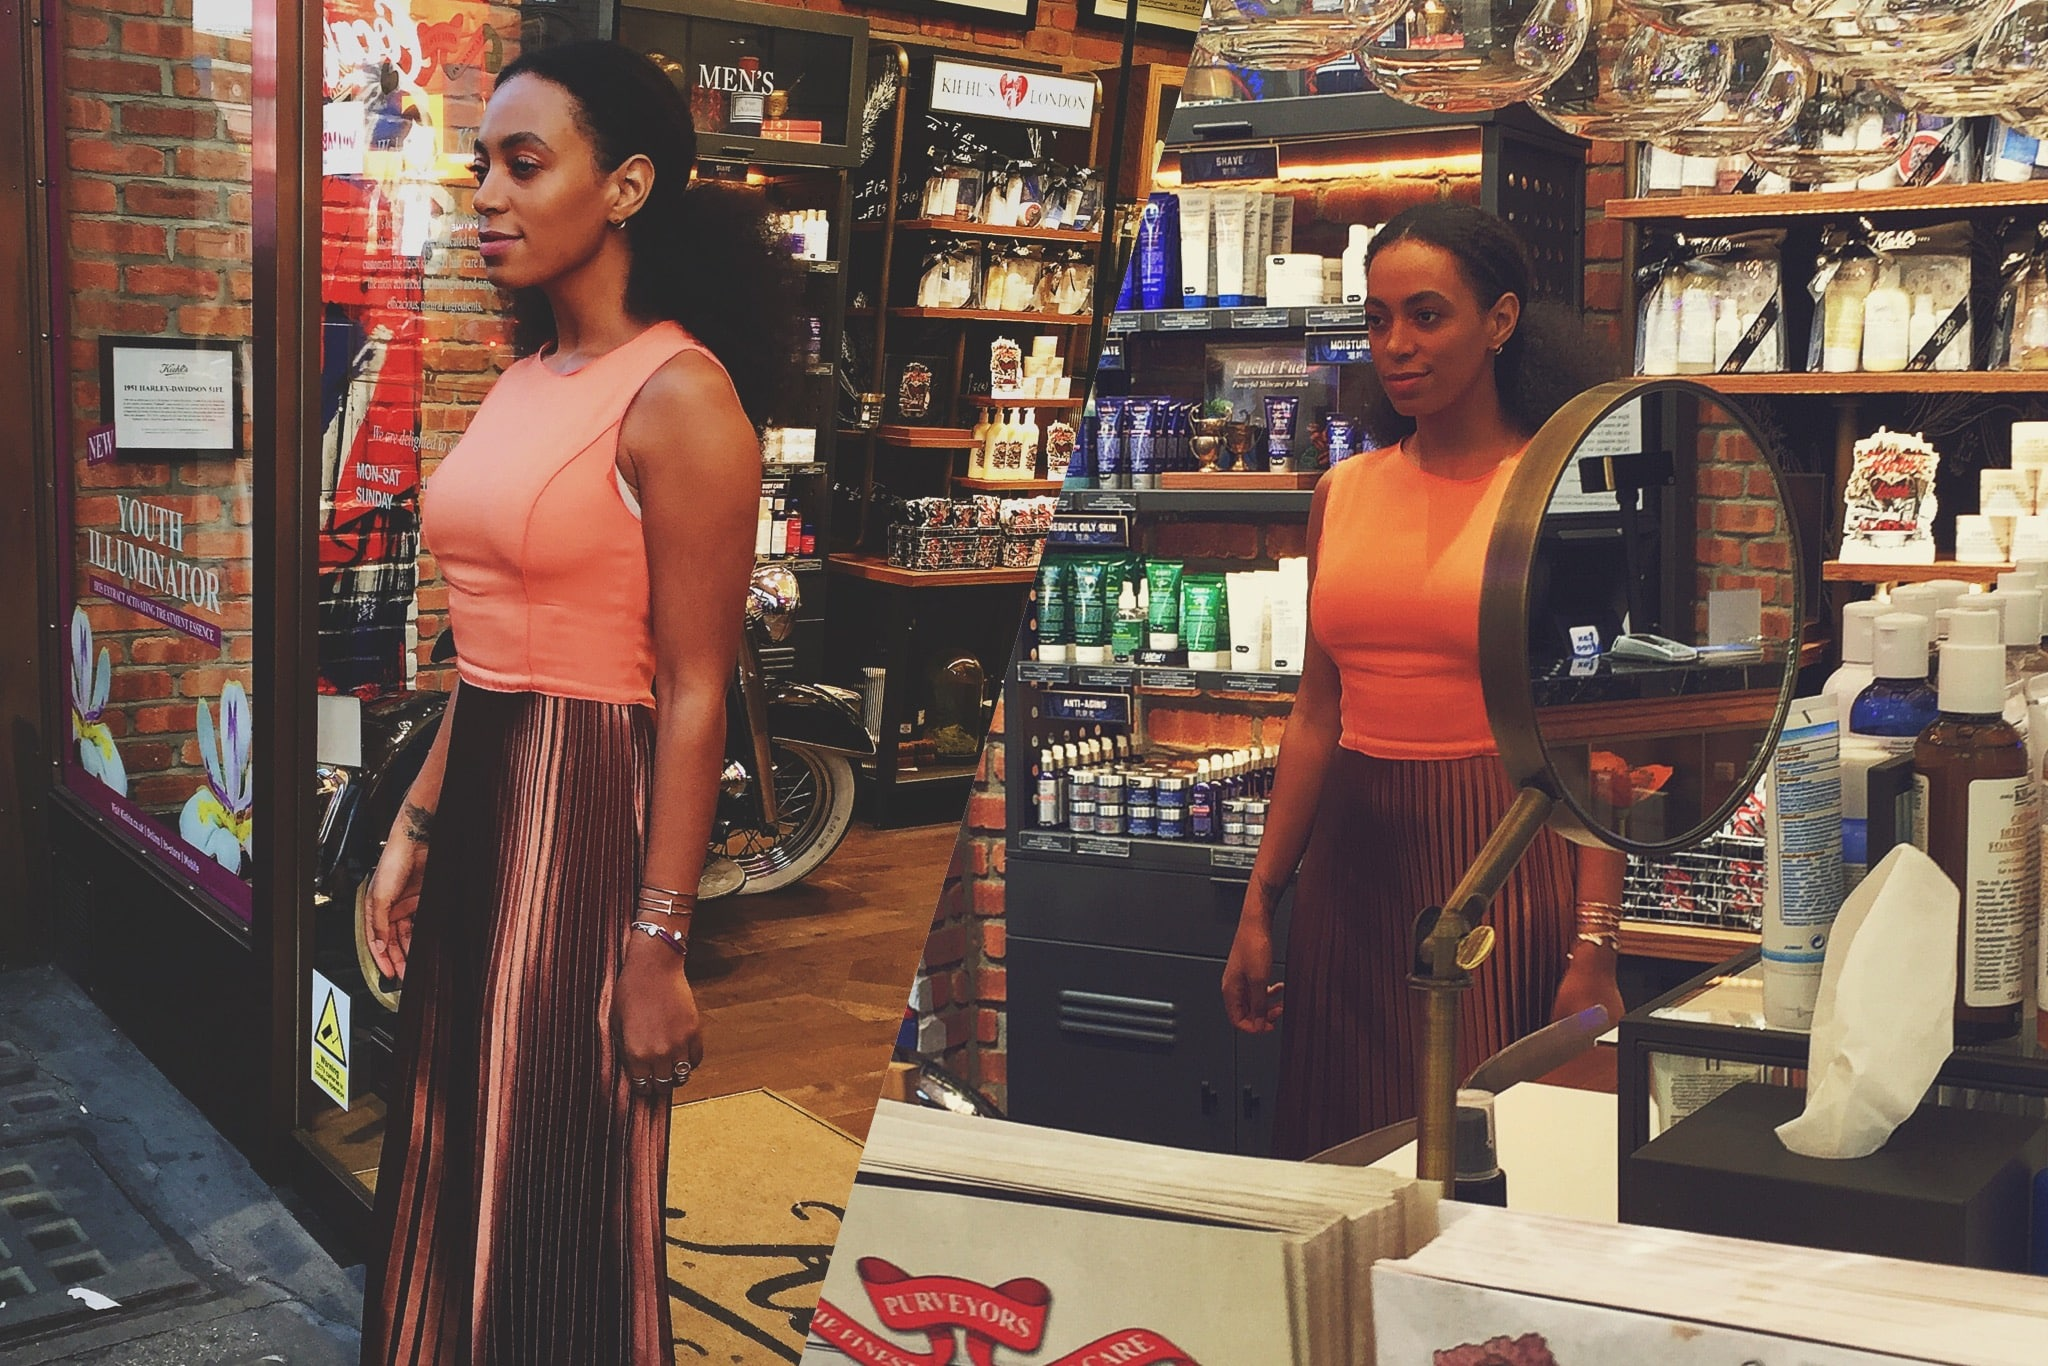 Solange arriving to the event!